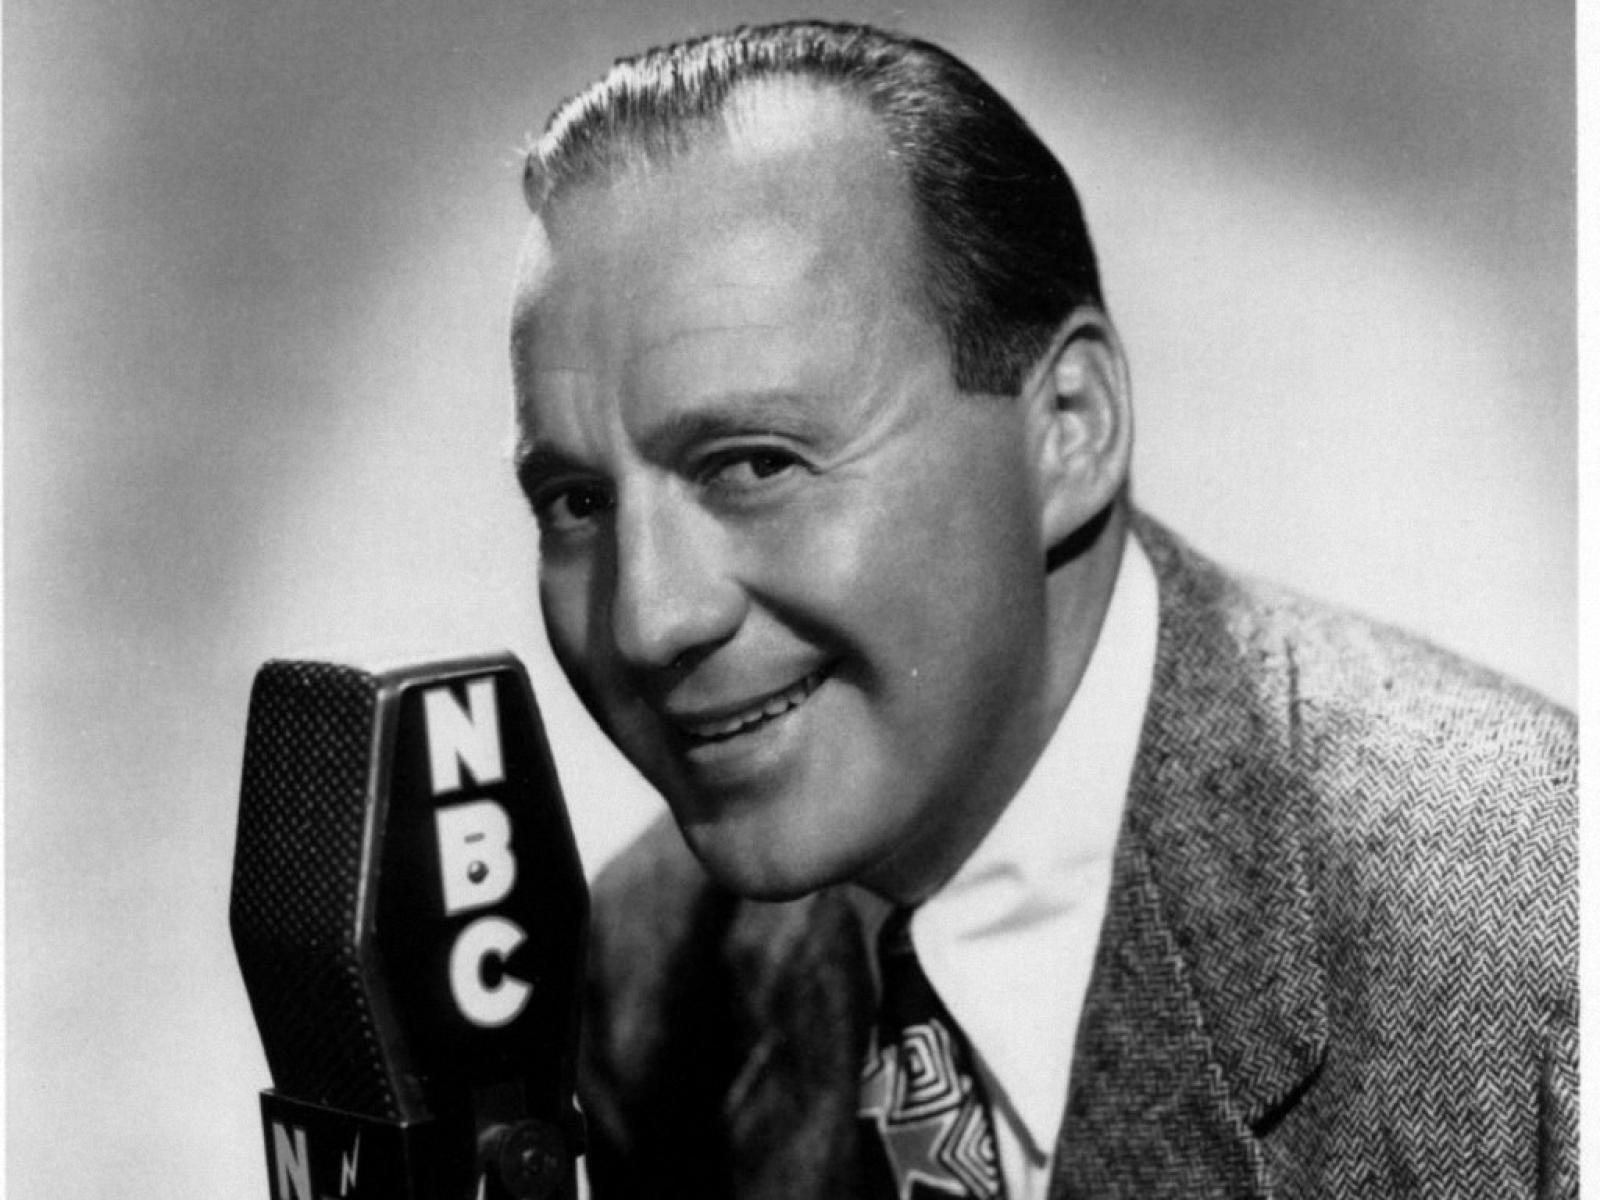 jack benny essays Her serious approach to work allowed her to be funny and accessible on the jack benny show, yet made her to be more insightful than expected when singing a song by richard strauss her superb management of her voice and appearance enabled her to sing a very effective mad scene as lucia di.